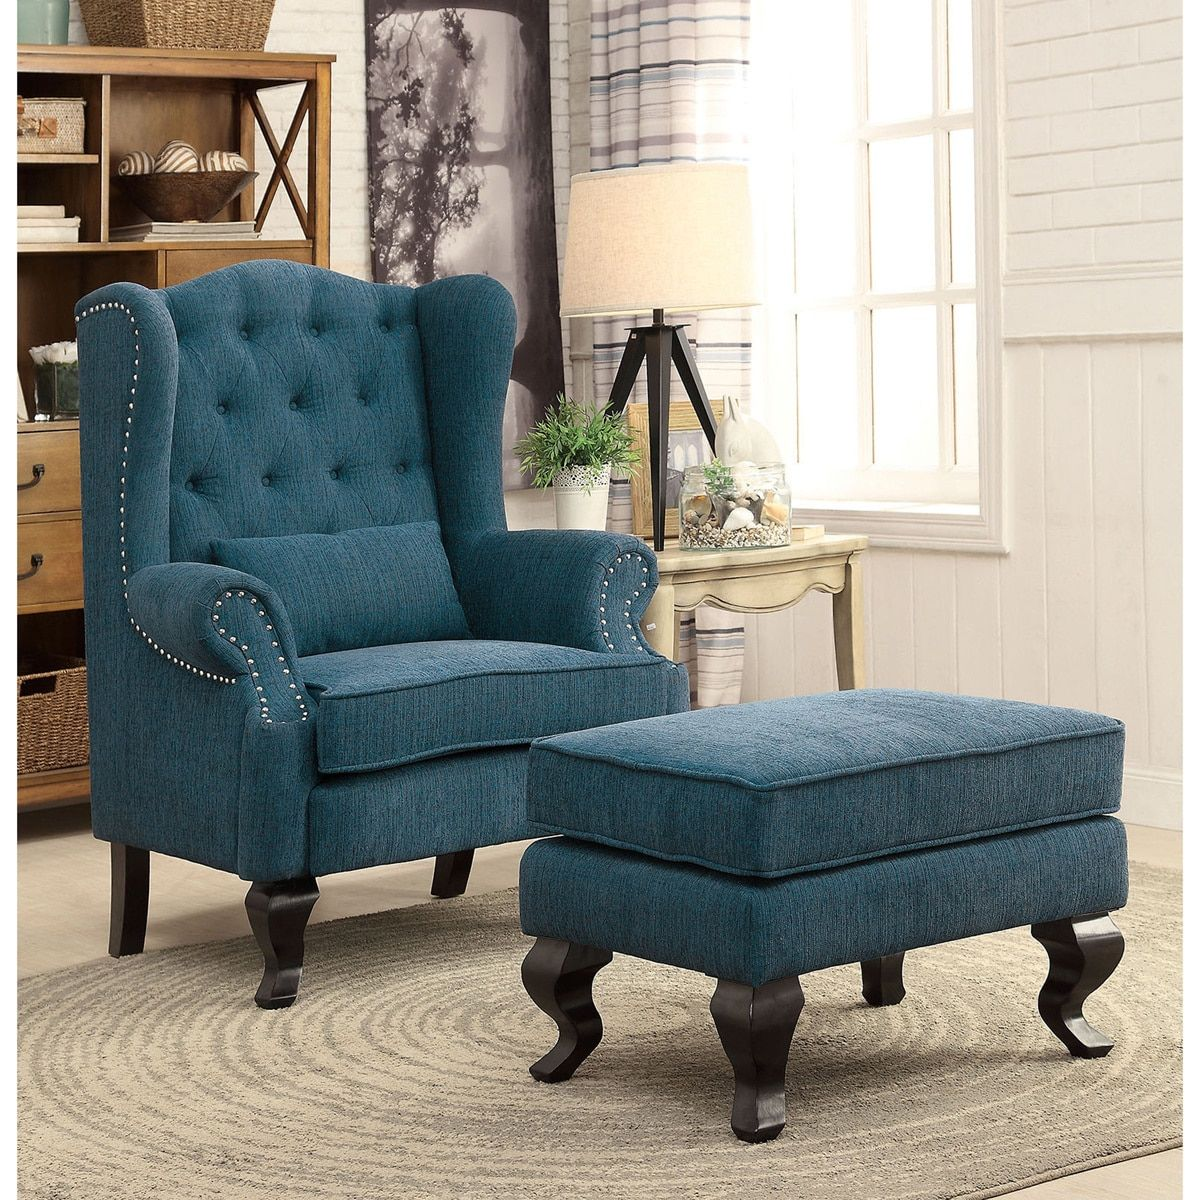 Charming Furniture Of America Irving Traditional 2 Piece Tufted Wingback Armchair  And Ottoman Set Awesome Ideas